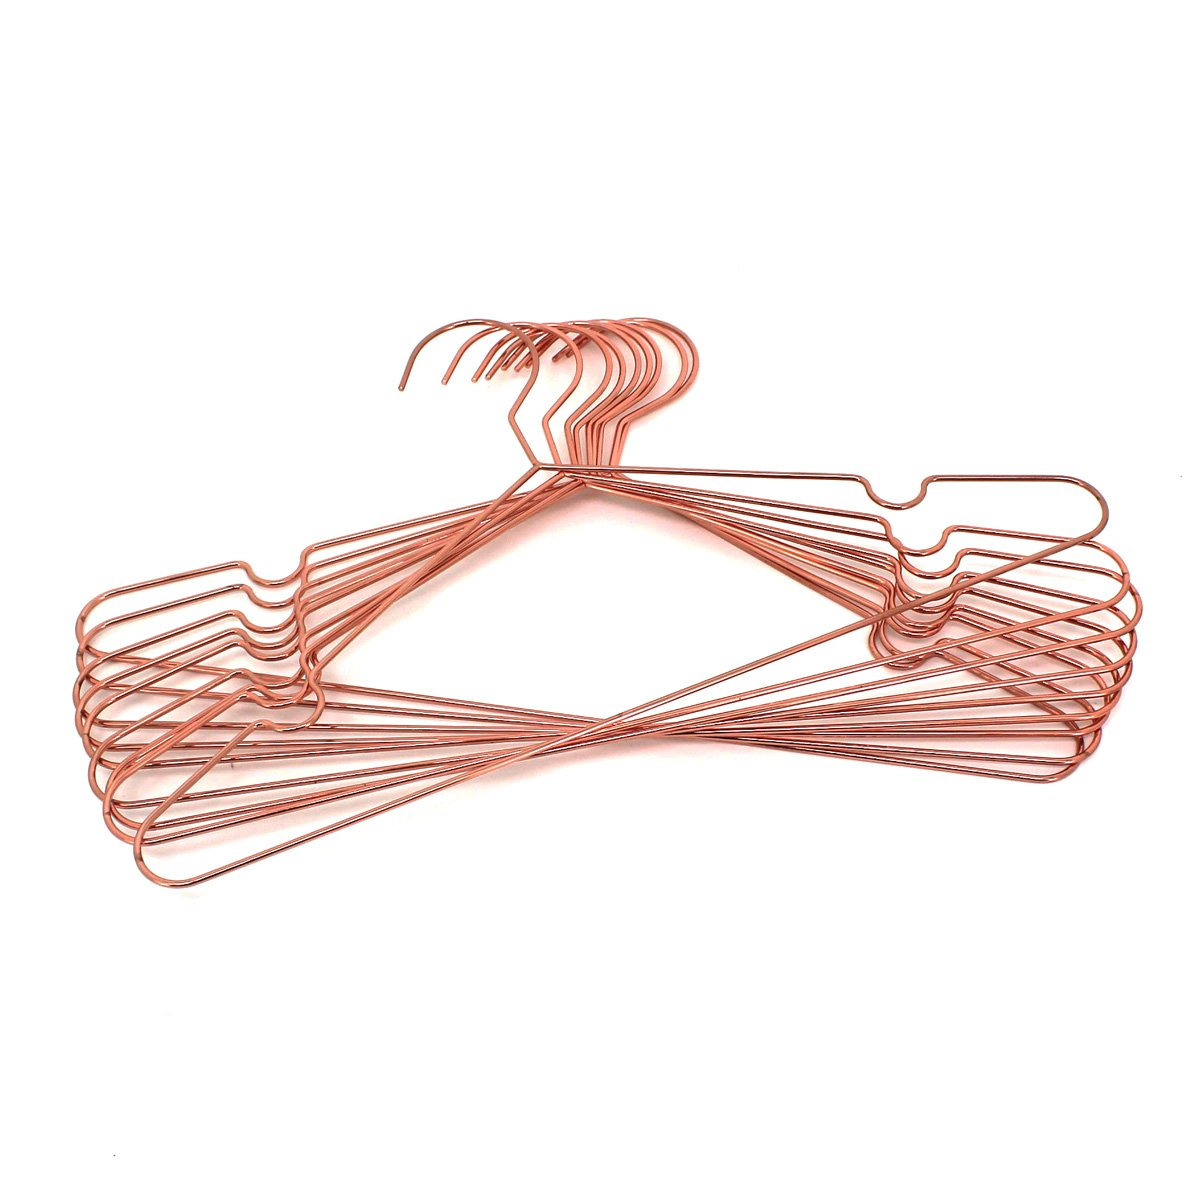 Koobay 30Pack A17 Adult Rose Copper Gold Shiny Metal Wire Top Clothes Hangers for Shirts Coat Storage & Display by Koobay